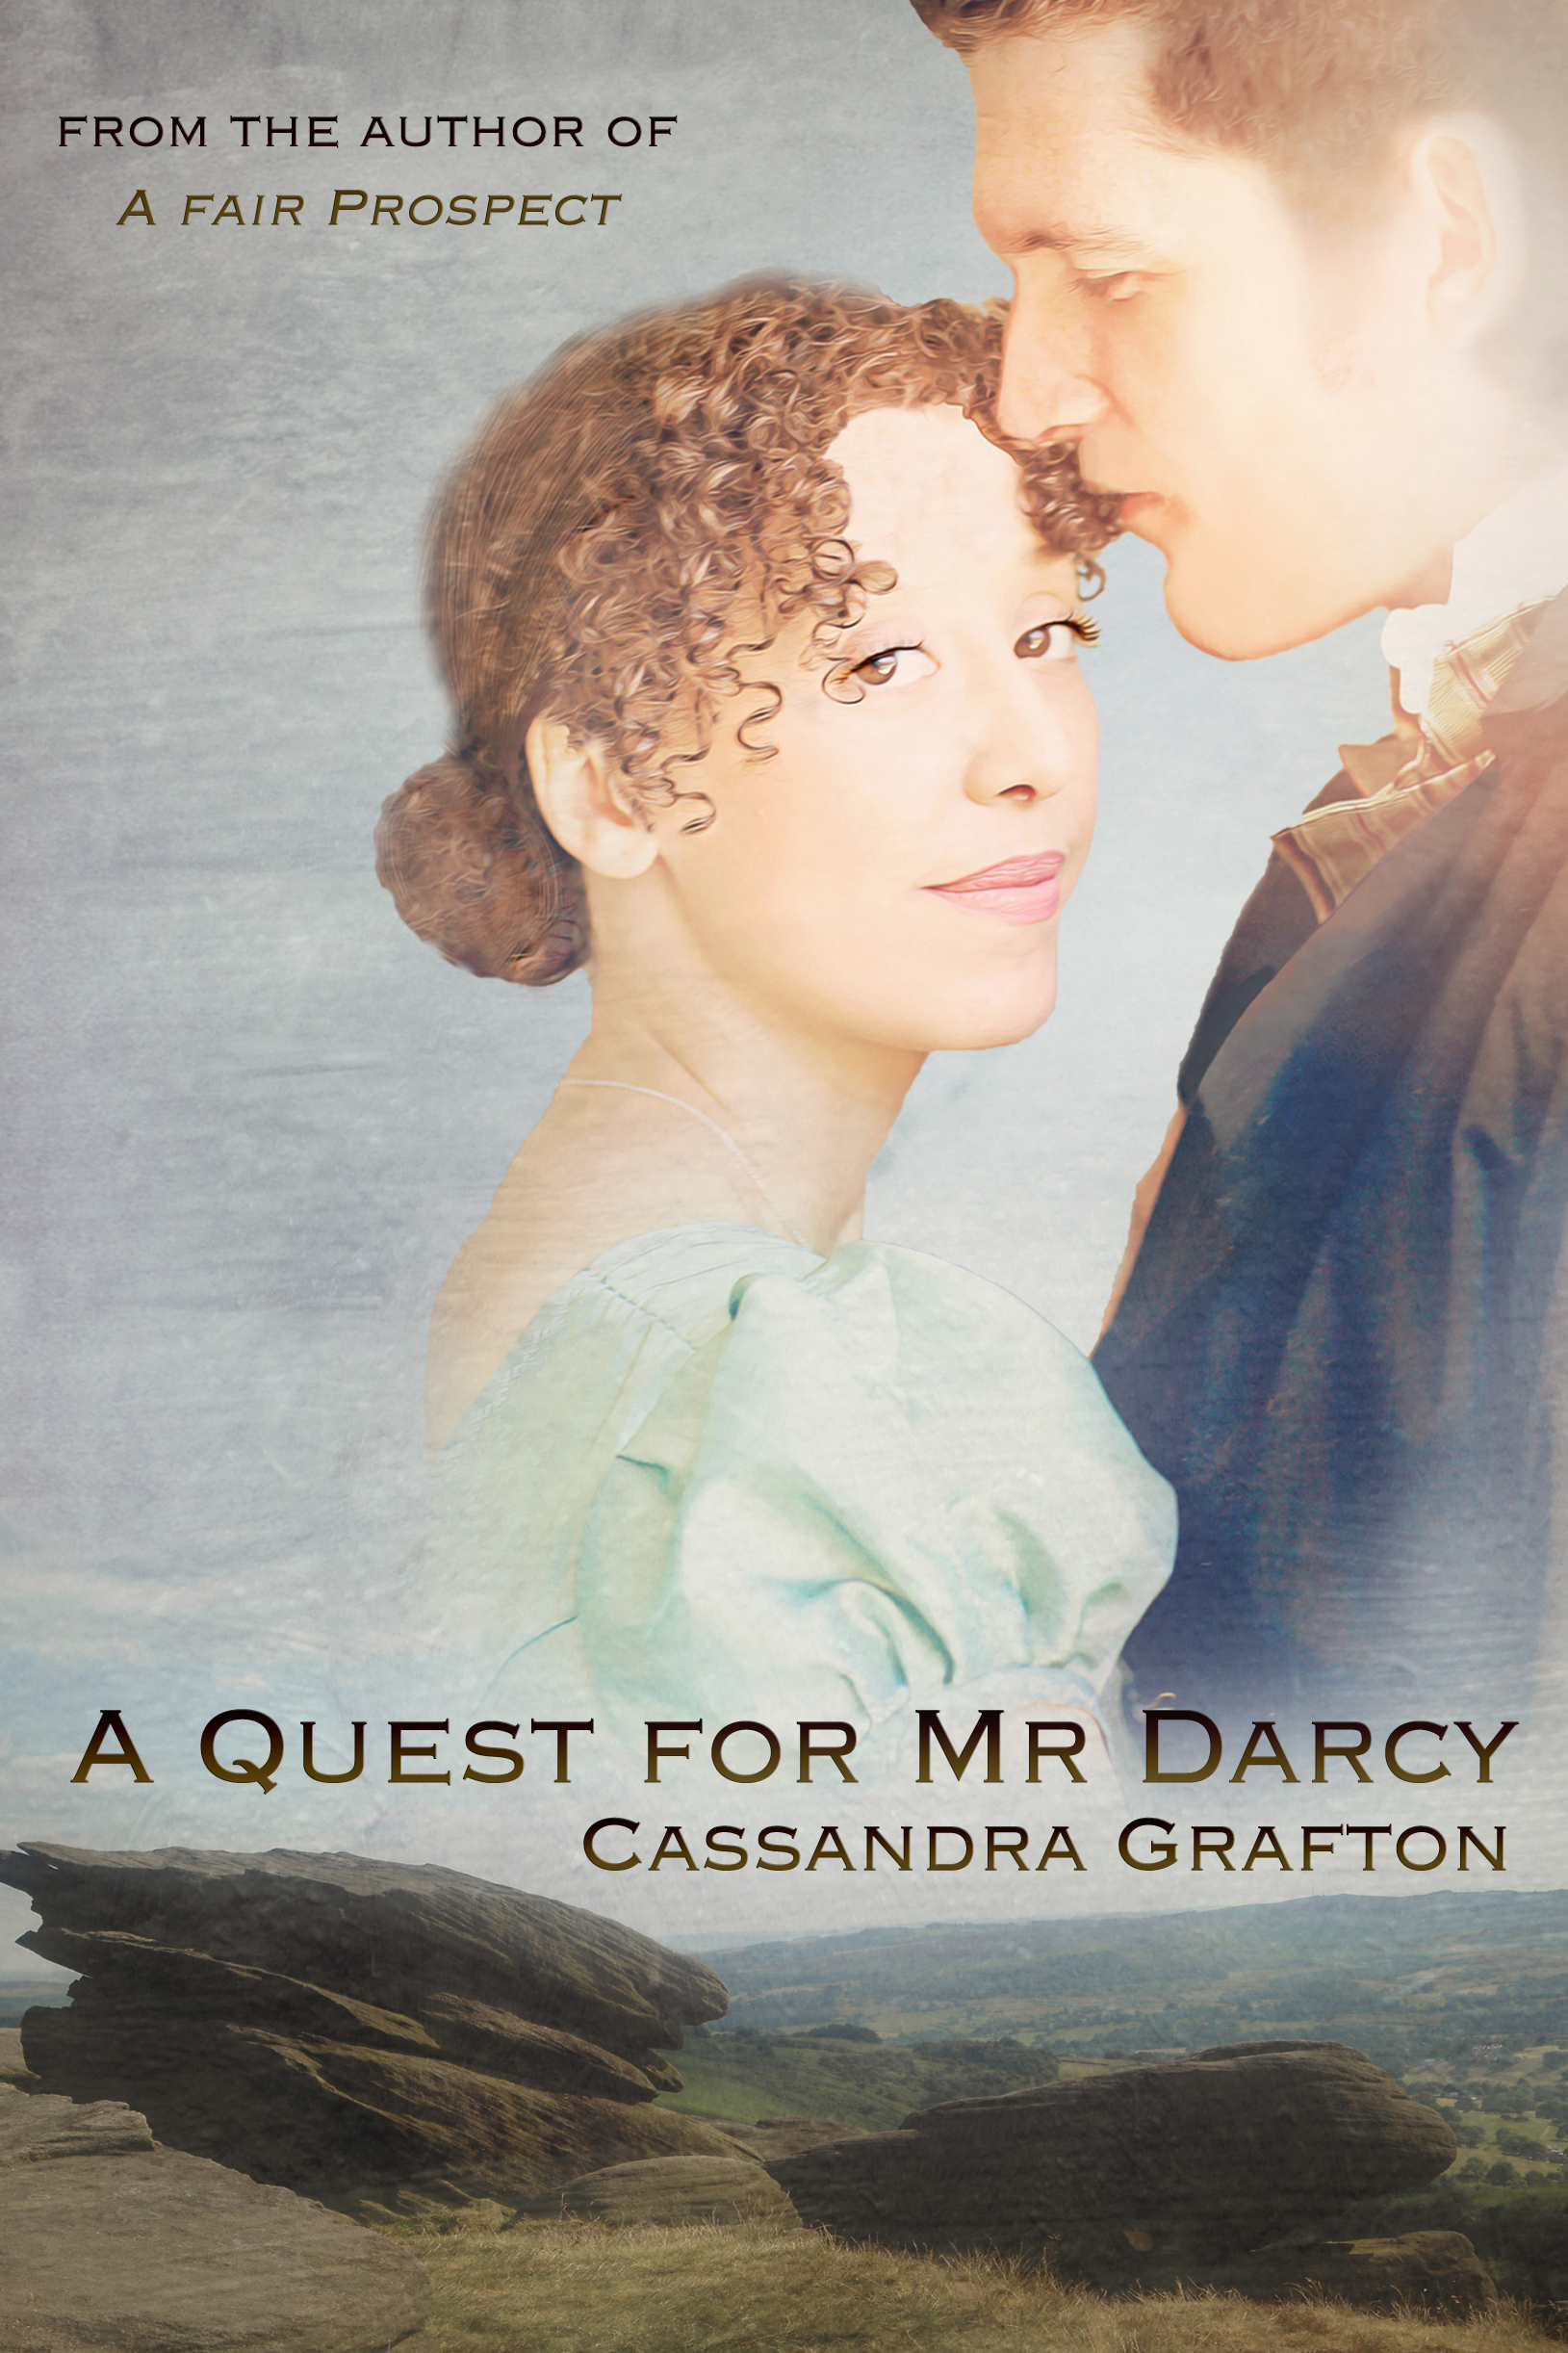 Cass grafton author writer of contemporary and regency romance i am delighted to say a quest for mr darcy is now available for pre order on amazon at the link here with a release date of 22nd june fandeluxe Ebook collections